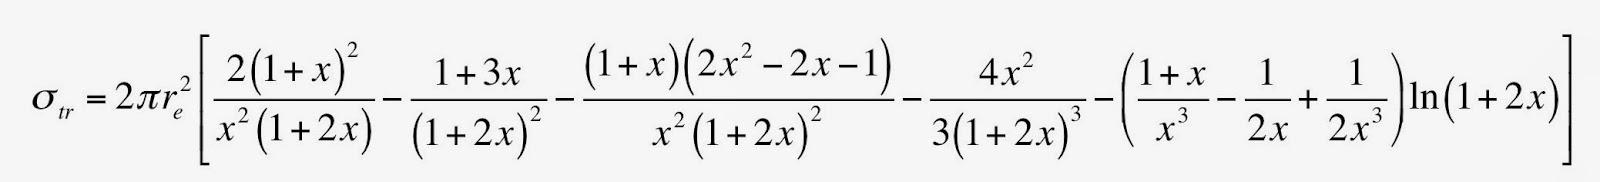 Equation 15.22 in Intermediate Physics for Medicine and Biology, giving the cross section for energy transferred to electrons during Compton scattering, as a function of photon energy. It is the ugliest equation in the book.